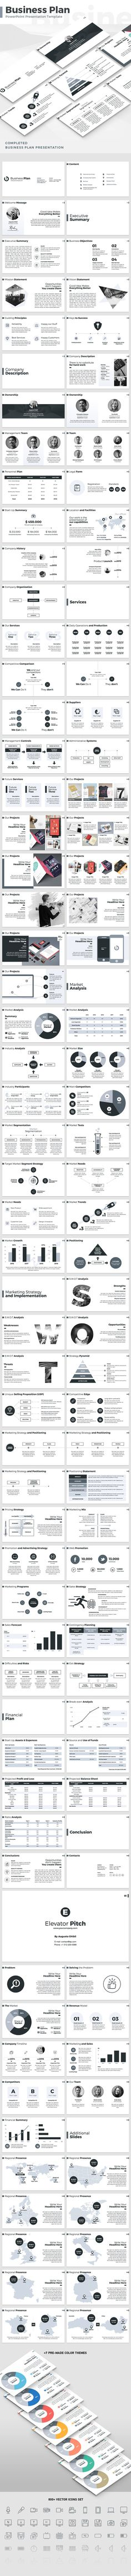 Business Plan - PowerPoint Presentation Template - PowerPoint Templates Presentation Templates Download here: https://graphicriver.net/item/business-plan-powerpoint-presentation-template/18705880?ref=classicdesignp